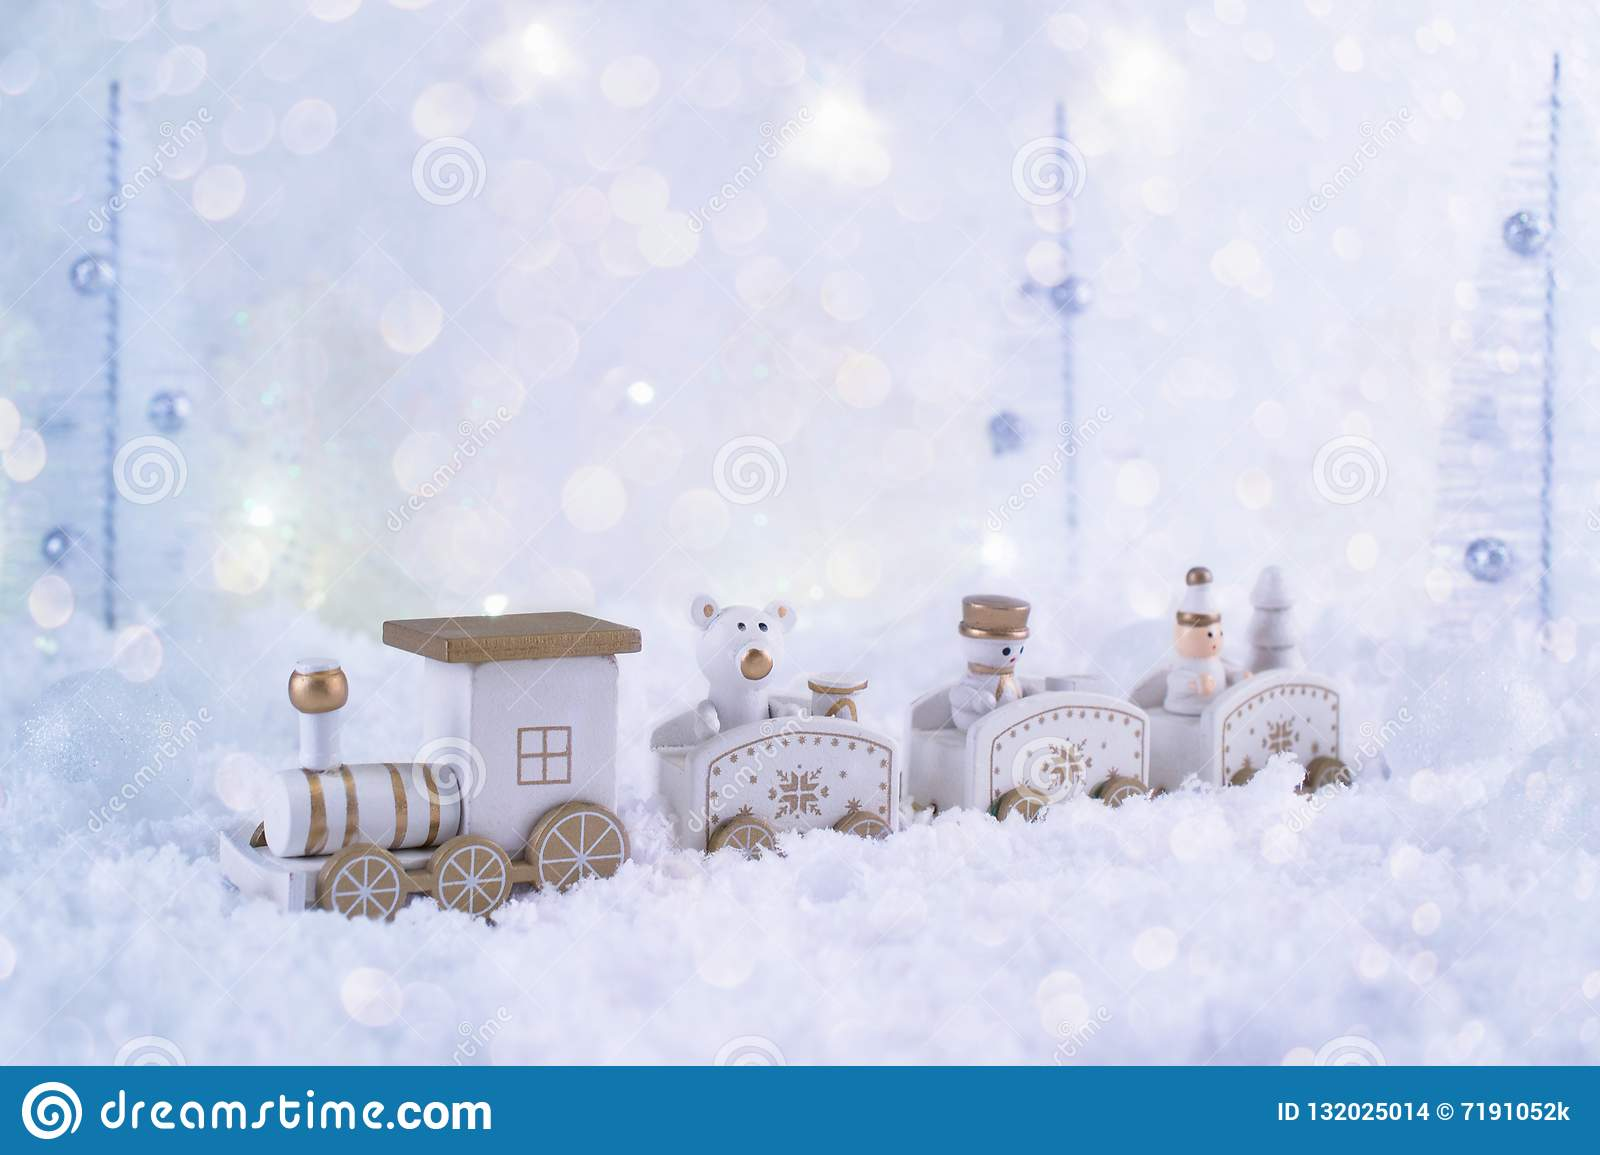 Frosty winter wonderland with toy train, snowfall and magic lights.